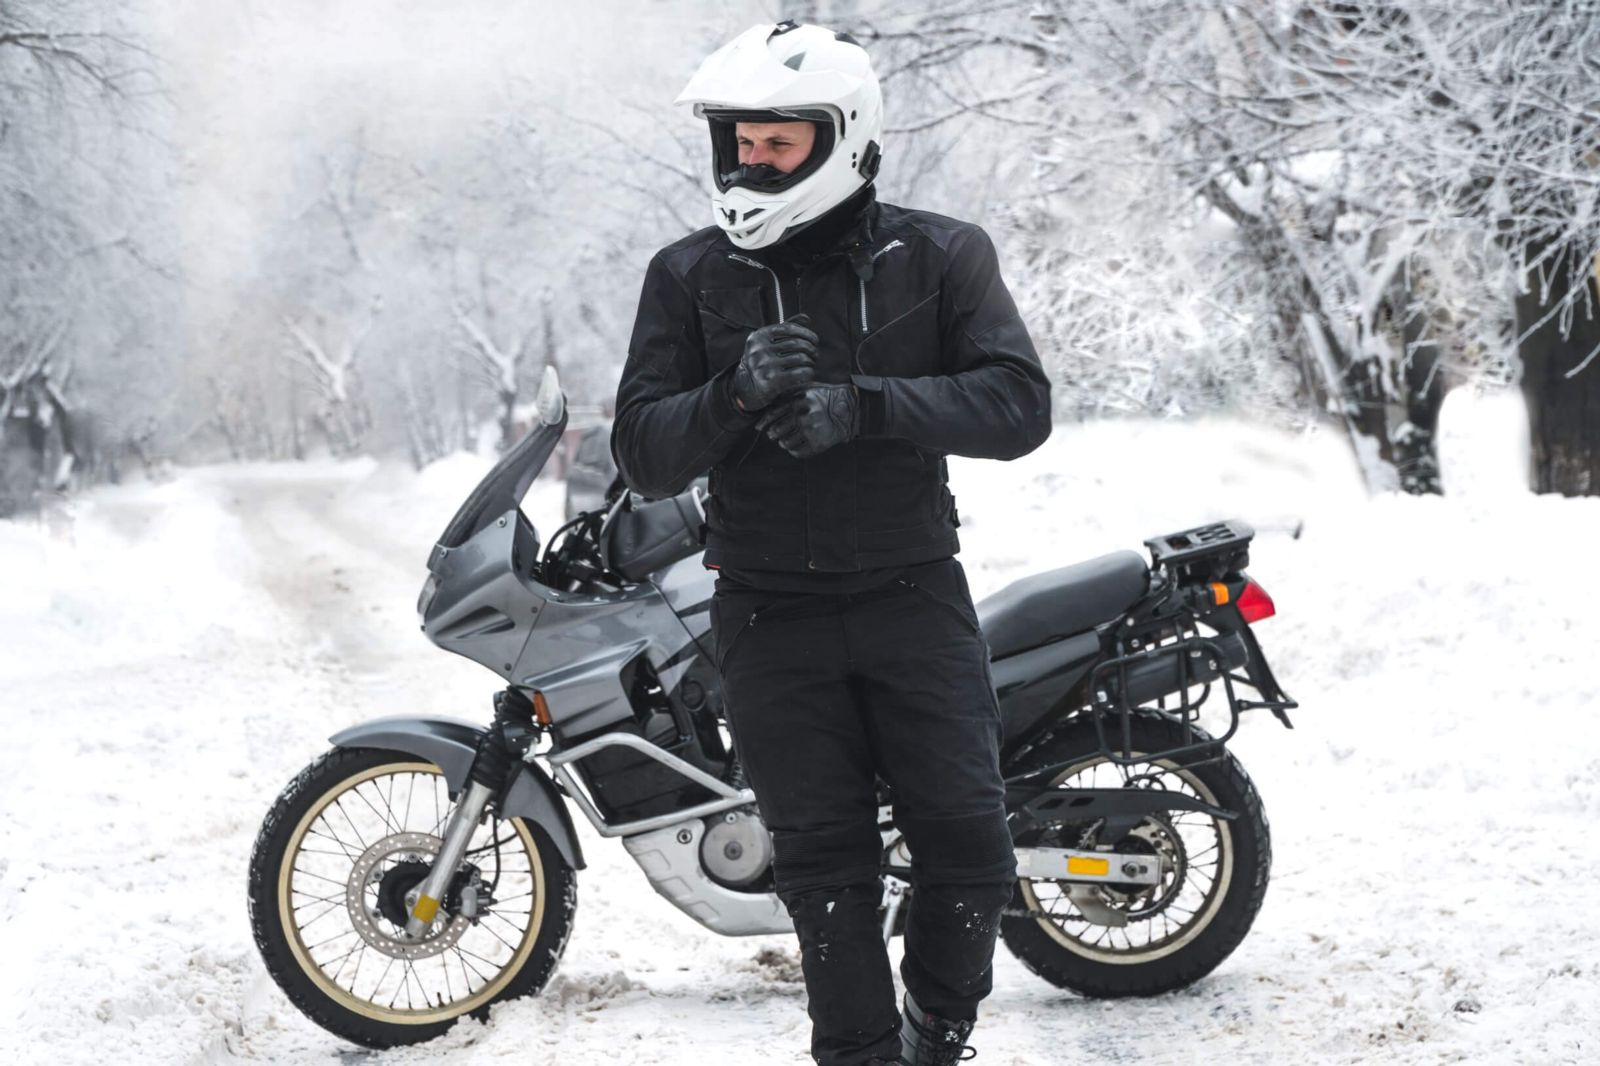 Motorcycle Safety In Cold Weather Foster Wallace Llc